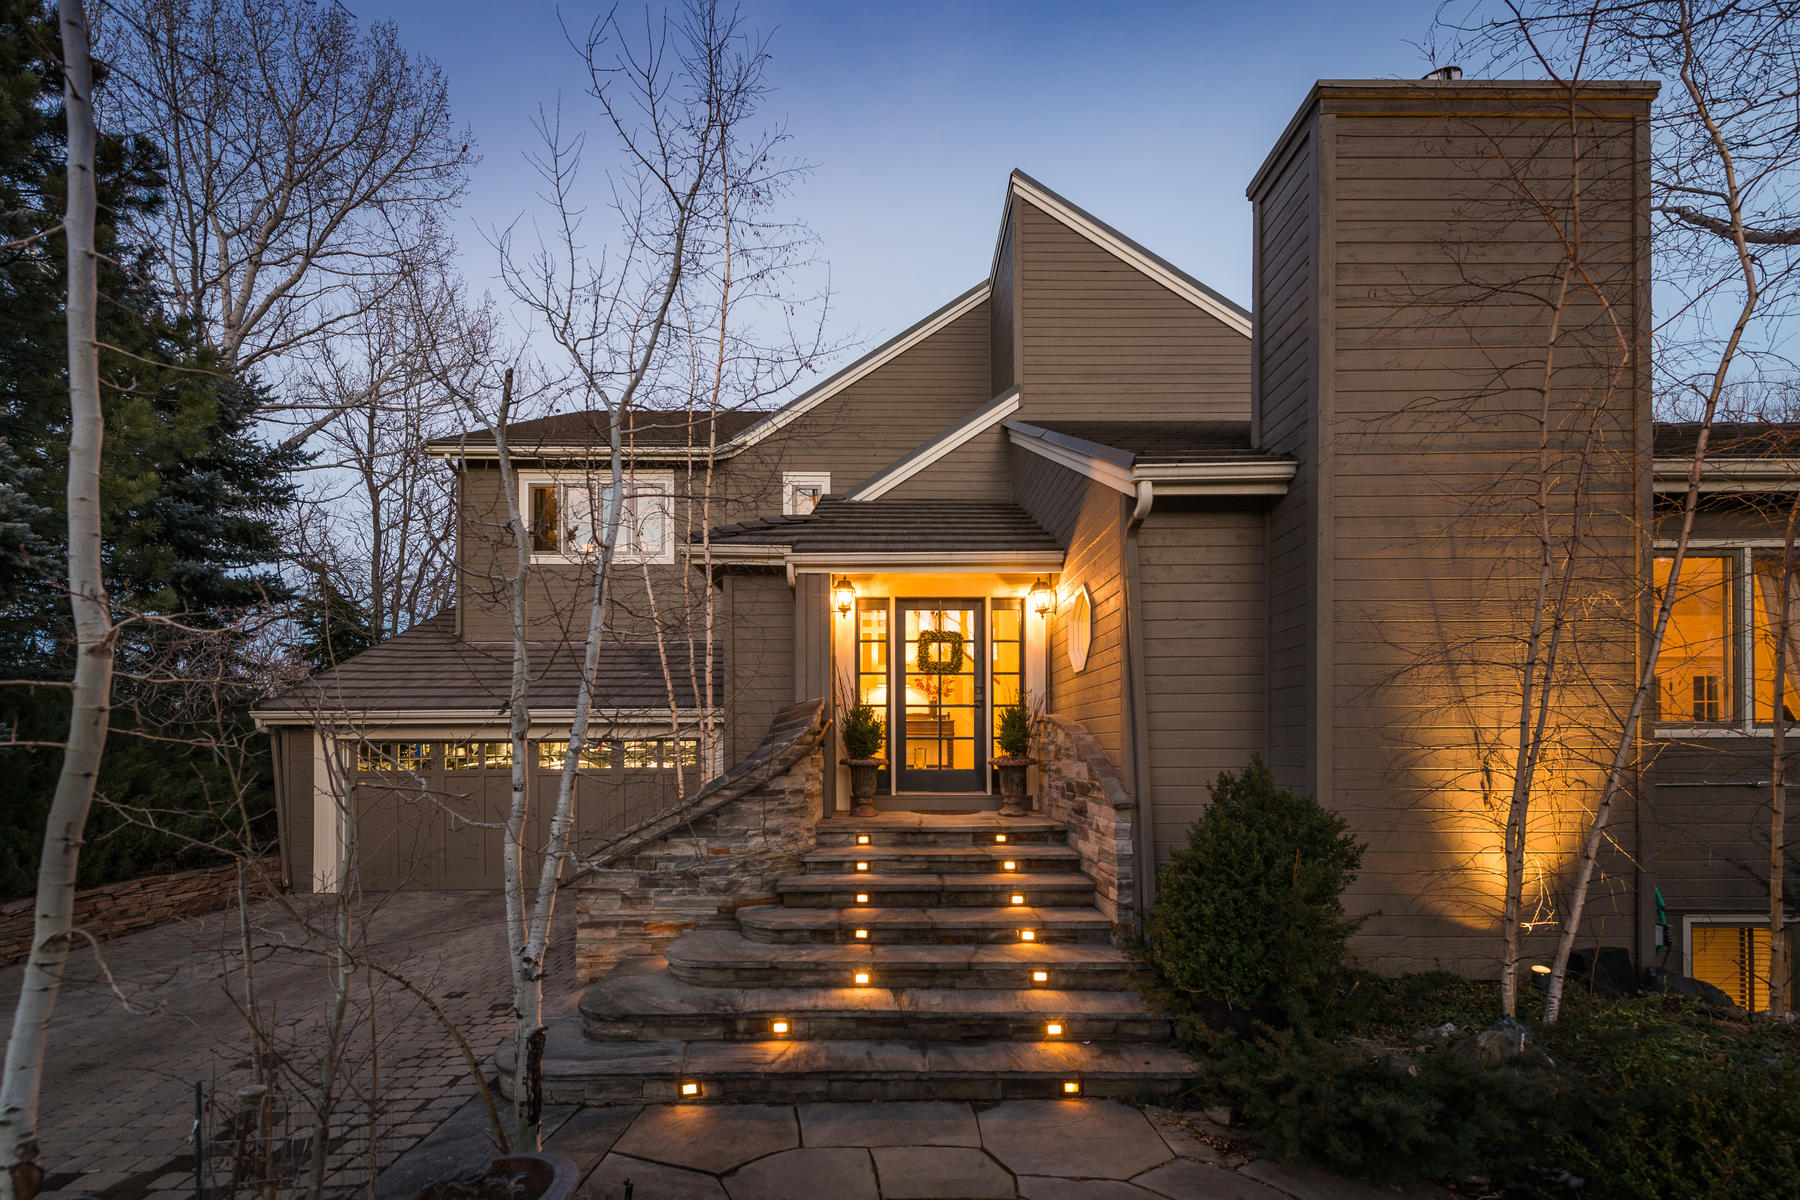 Single Family Home for Active at 3890 Norwood Court 3890 Norwood Court Boulder, Colorado 80304 United States